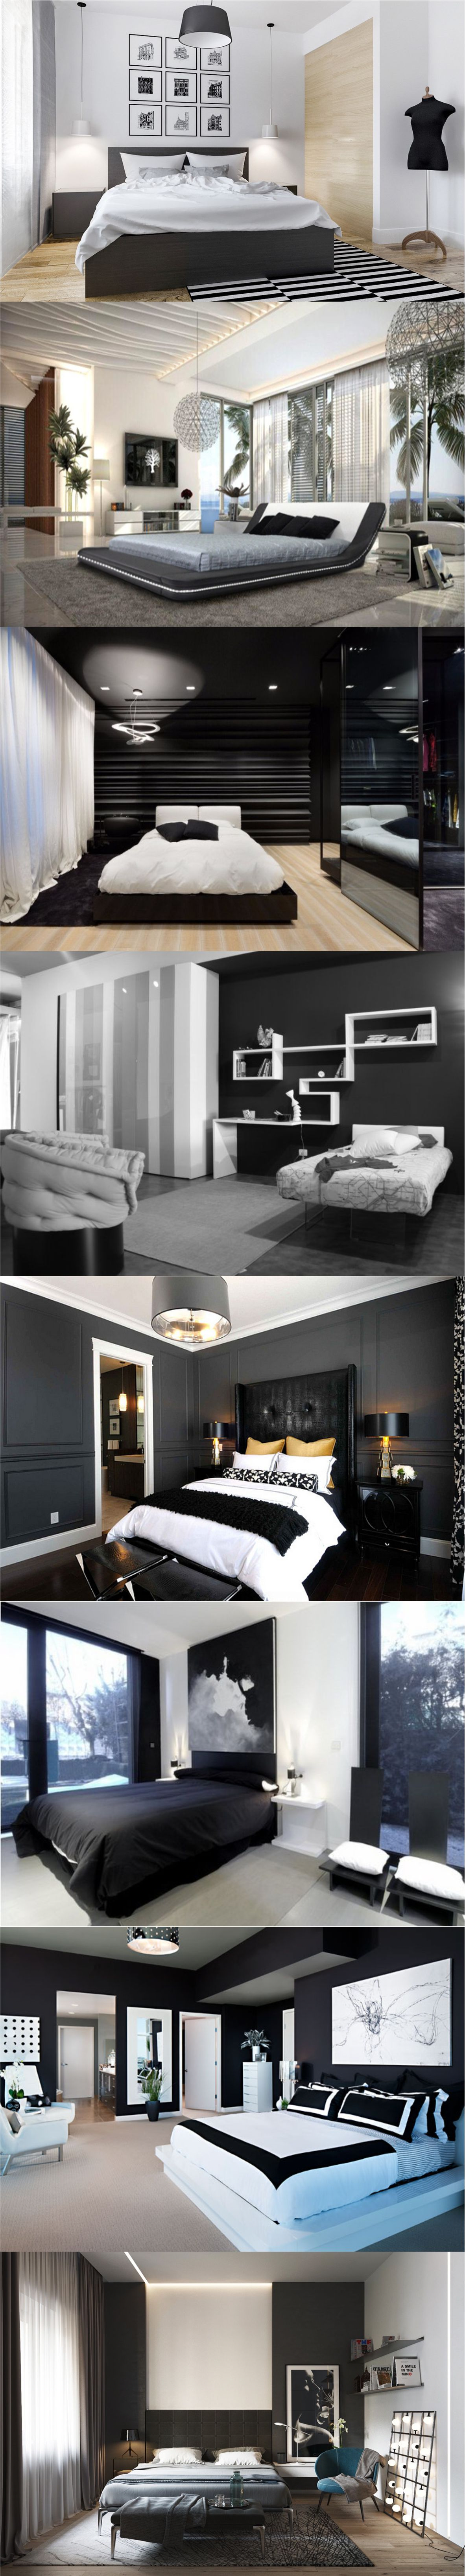 New Black and white bedroom ideas